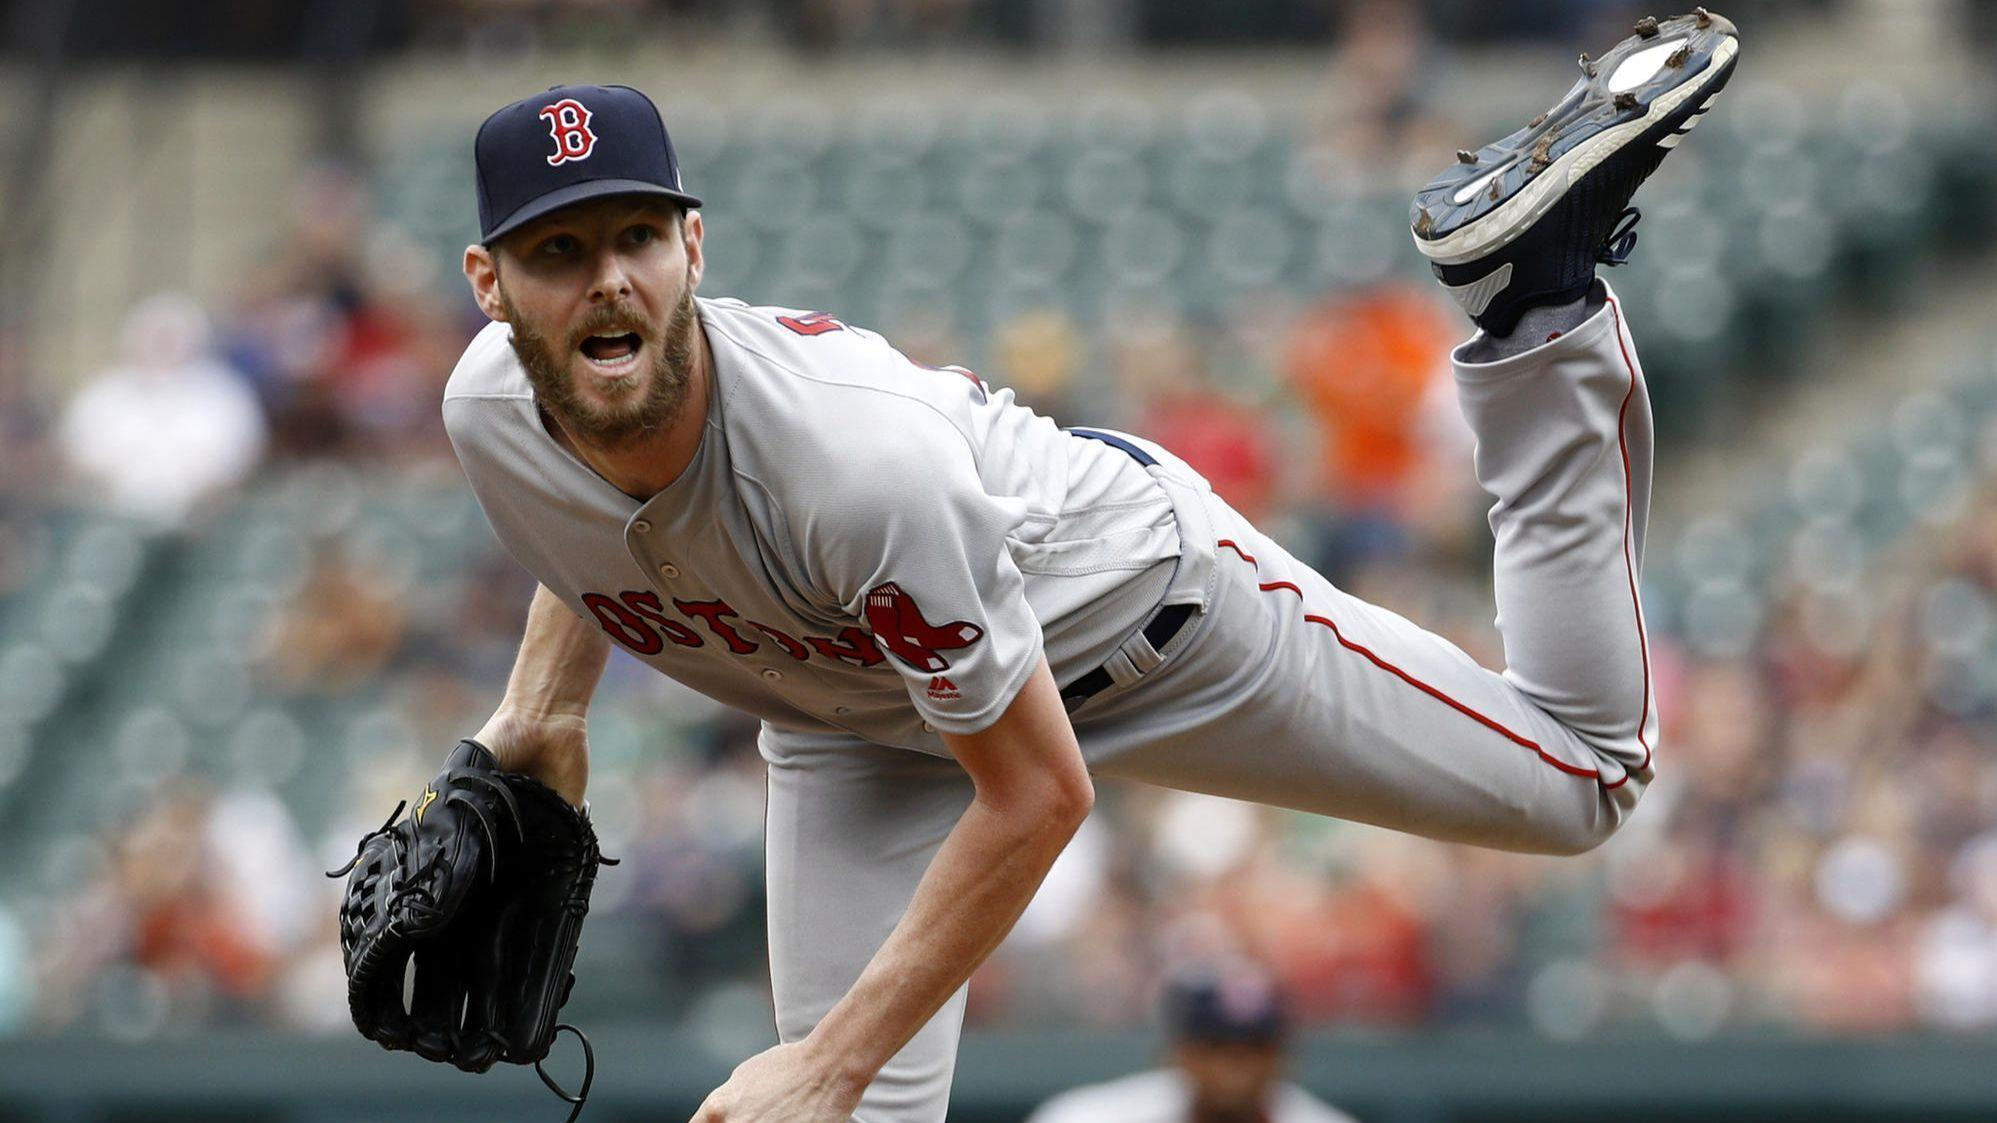 e35770b0ebb Chris Sale overpowers Orioles to help Red Sox complete four-game sweep with  4-1 win